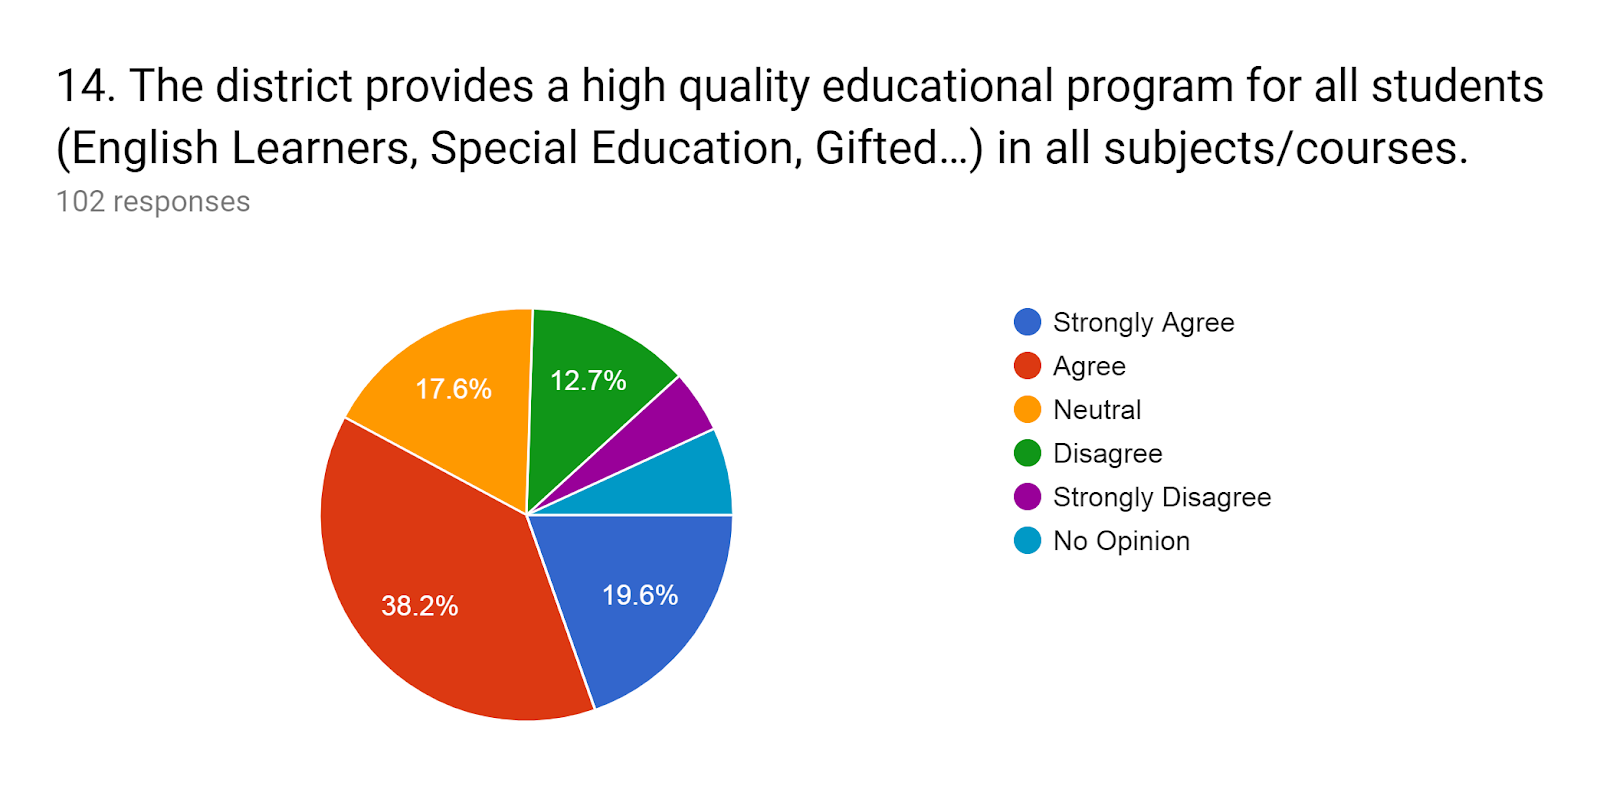 Forms response chart. Question title: 14.The district provides a high quality educational program for all students (English Learners, Special Education, Gifted…) in all subjects/courses.. Number of responses: 102 responses.